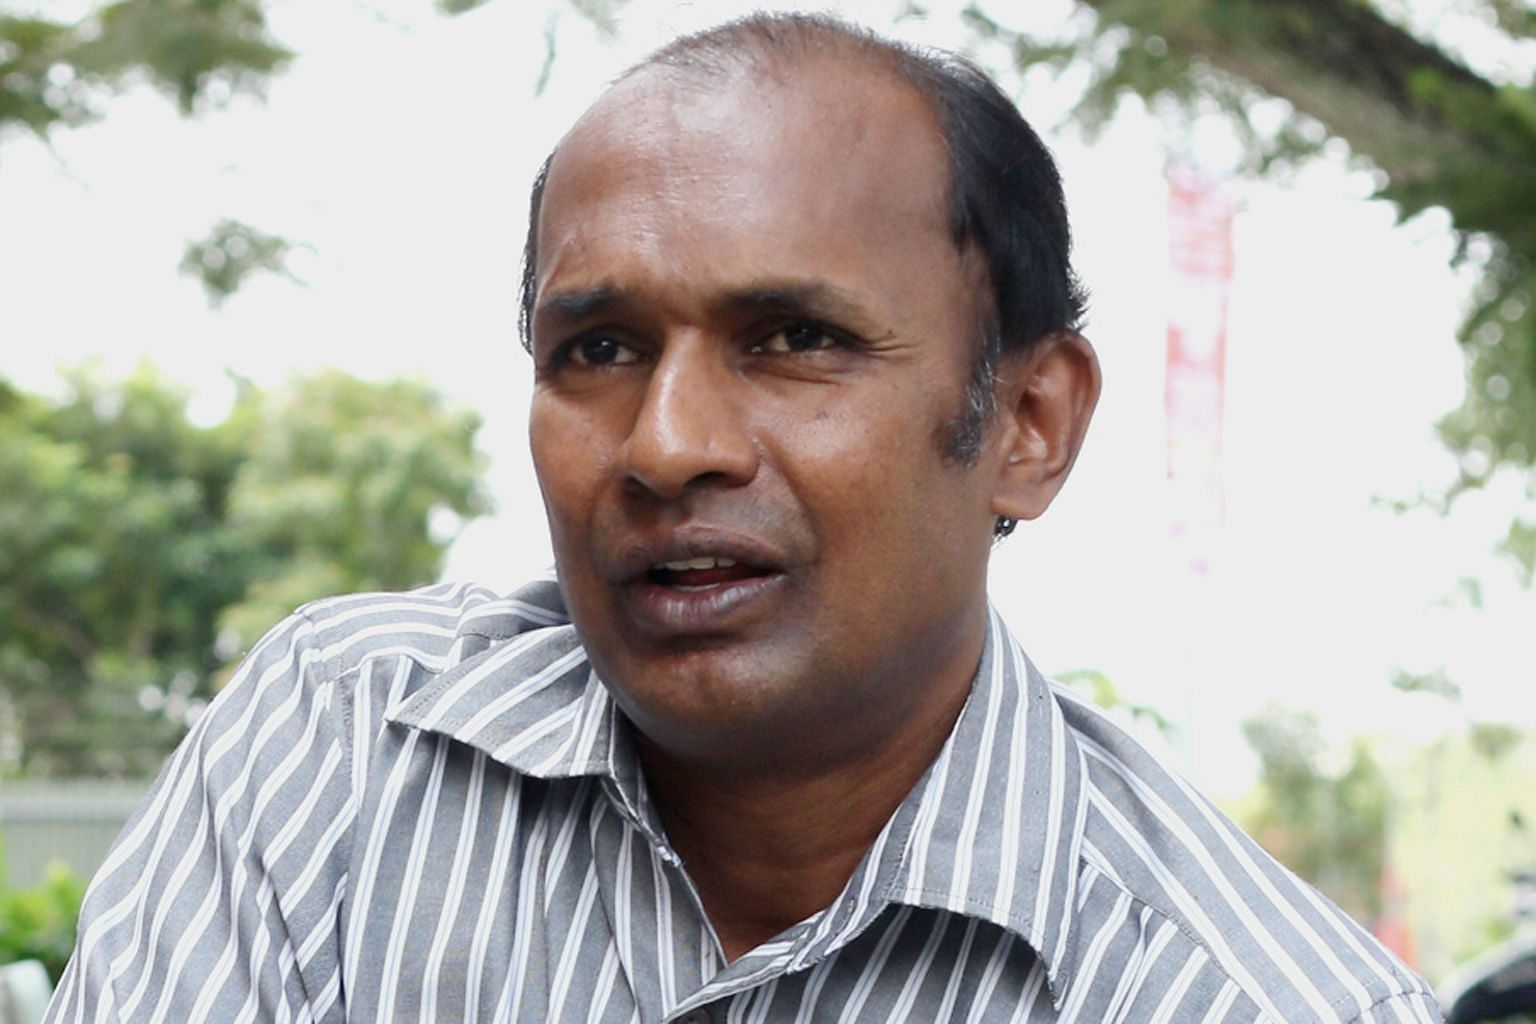 Mr Parthiban Arumugam has been consistent in taking medication and no longer drinks alcohol. He is even thinking of volunteering at IMH to help others like him, says his counsellor.